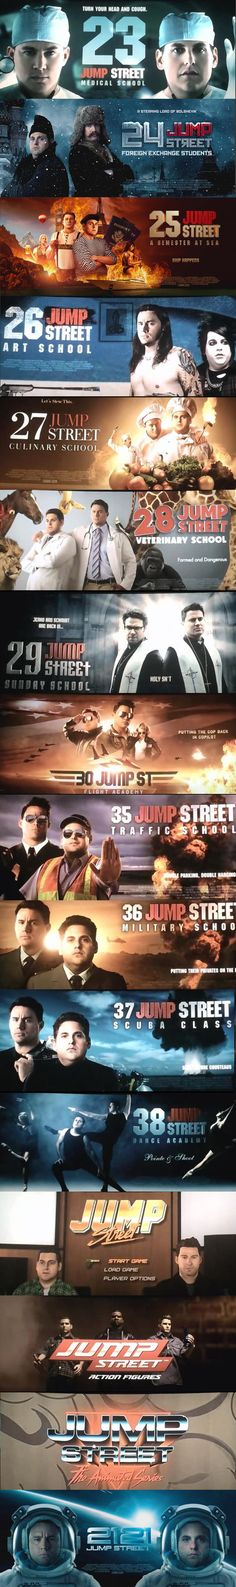 23, 24, 35... Jump Street. LoL #Funny #comedy #movies #channing #Jonah #Hill My video Game Blog: http://nogame5.blogspot.pt/